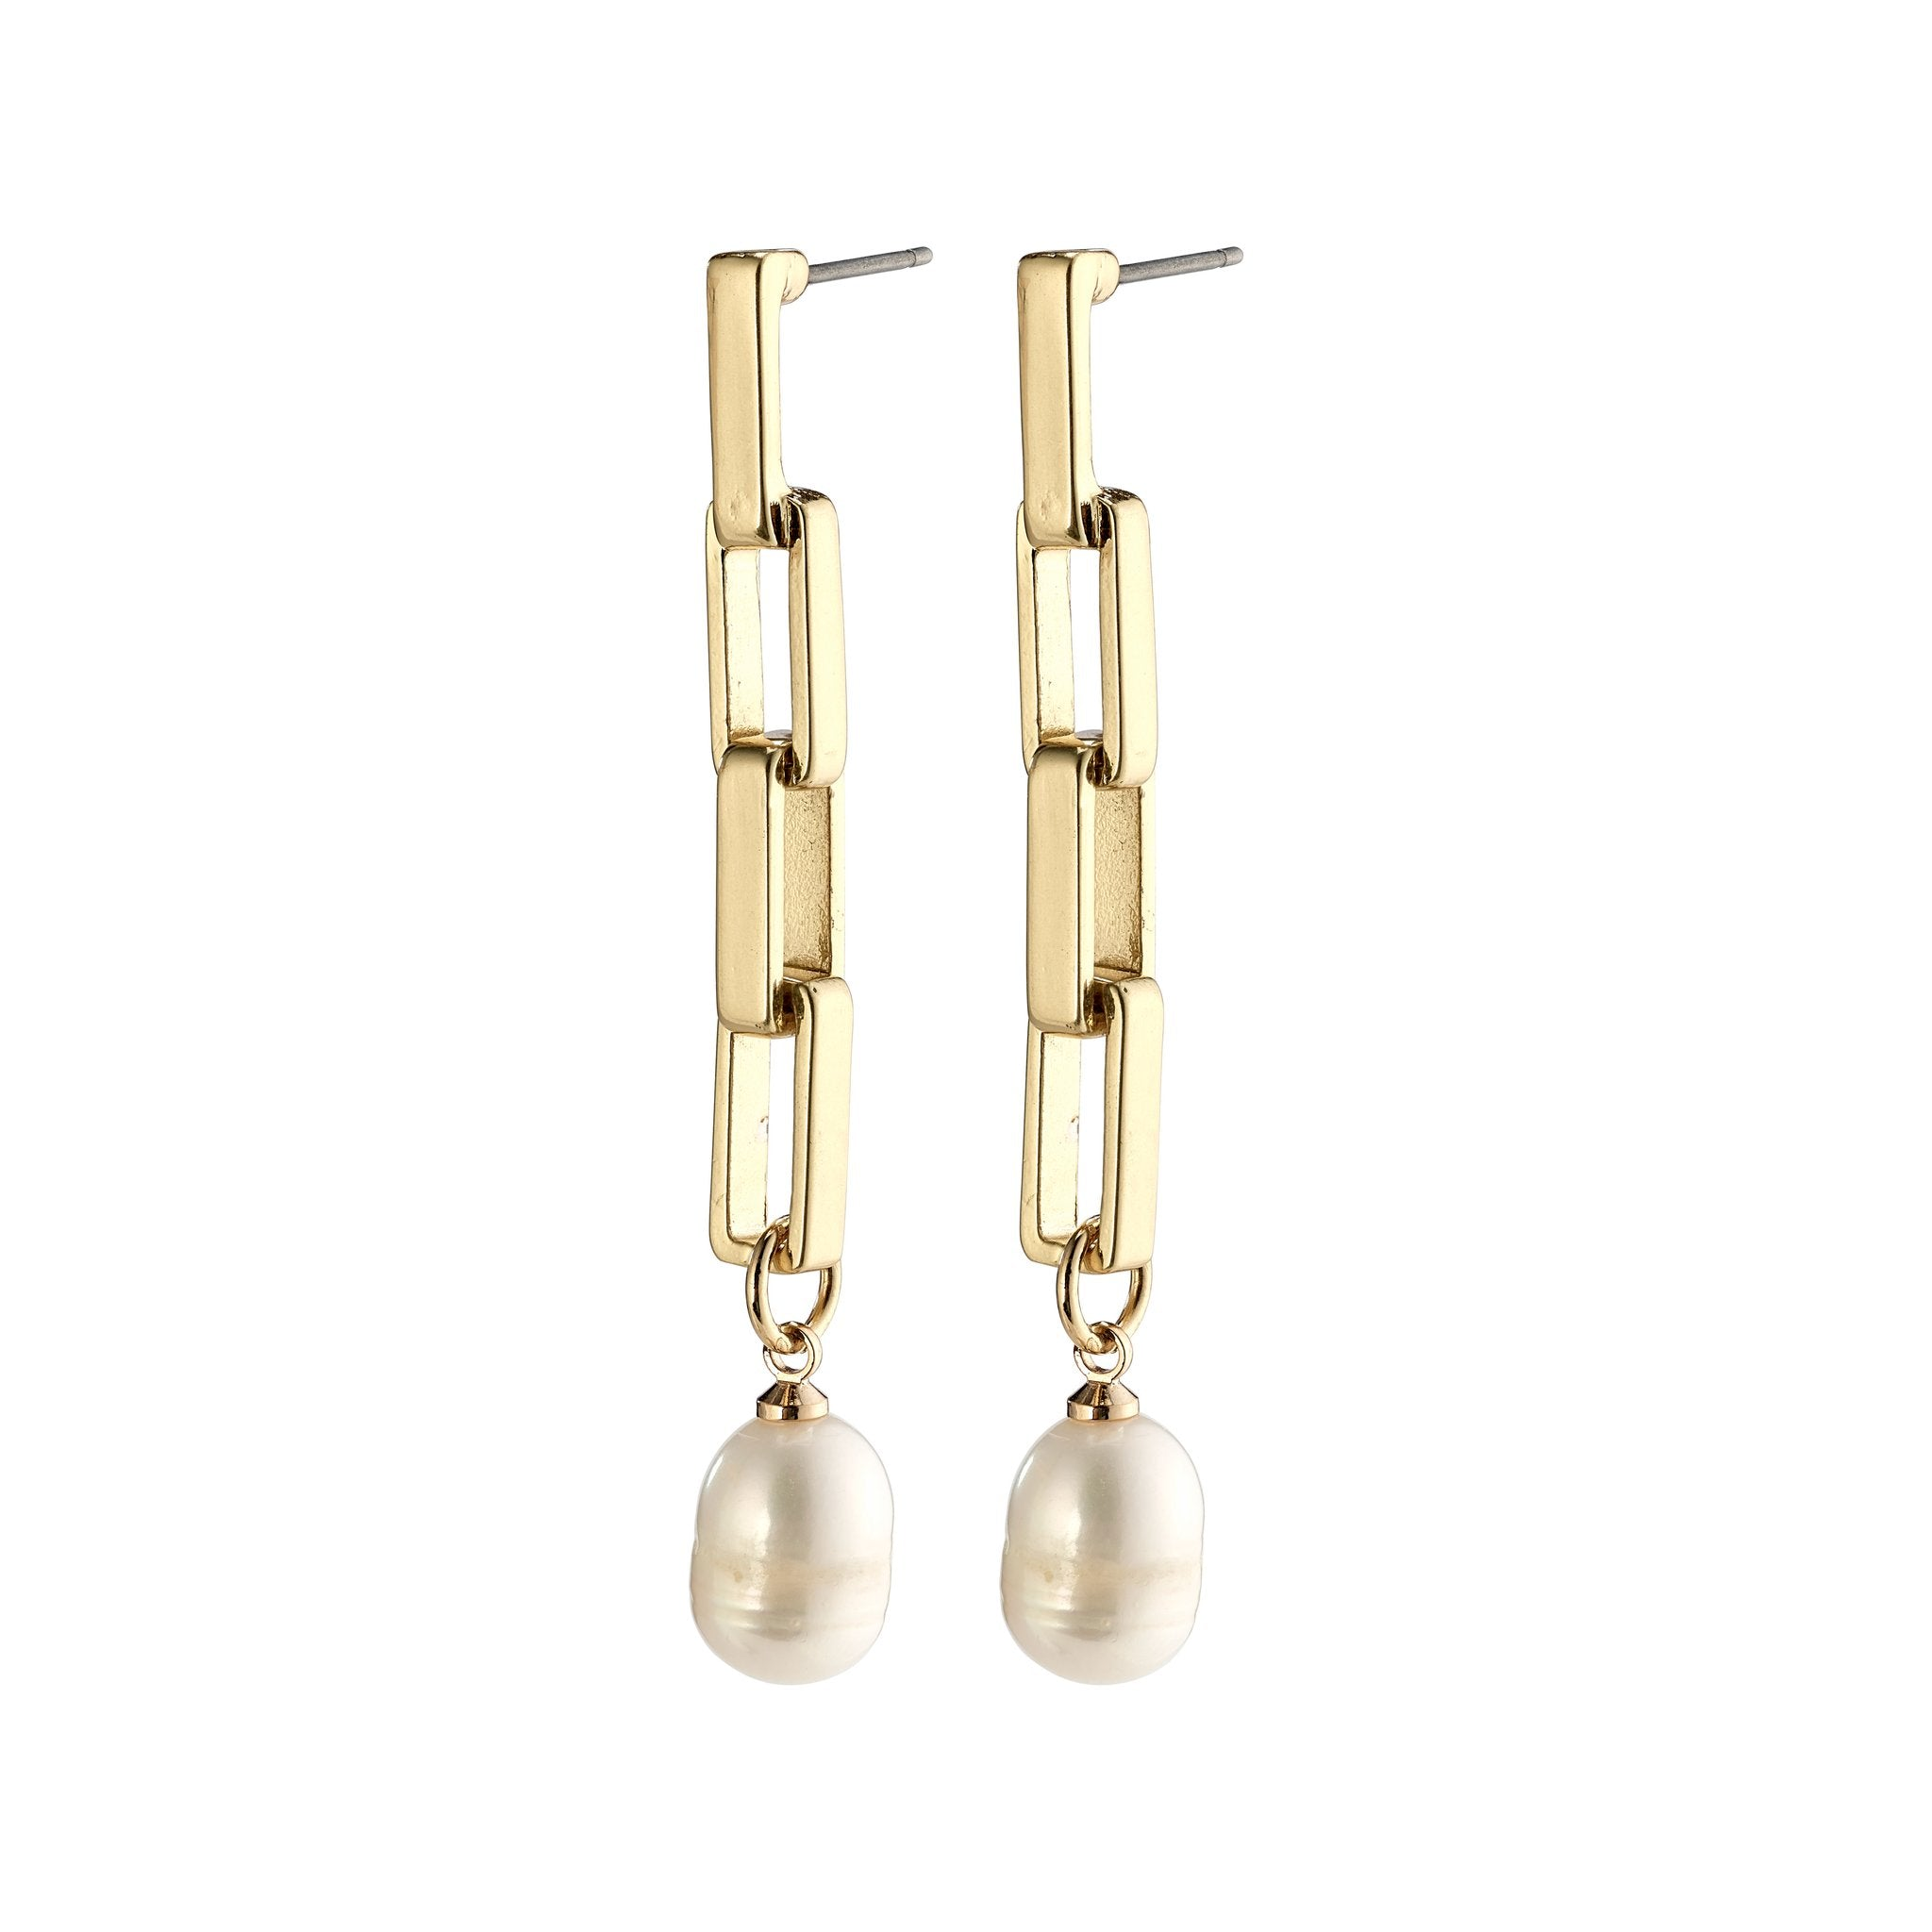 Colomba Earrings - Gold Plated - White